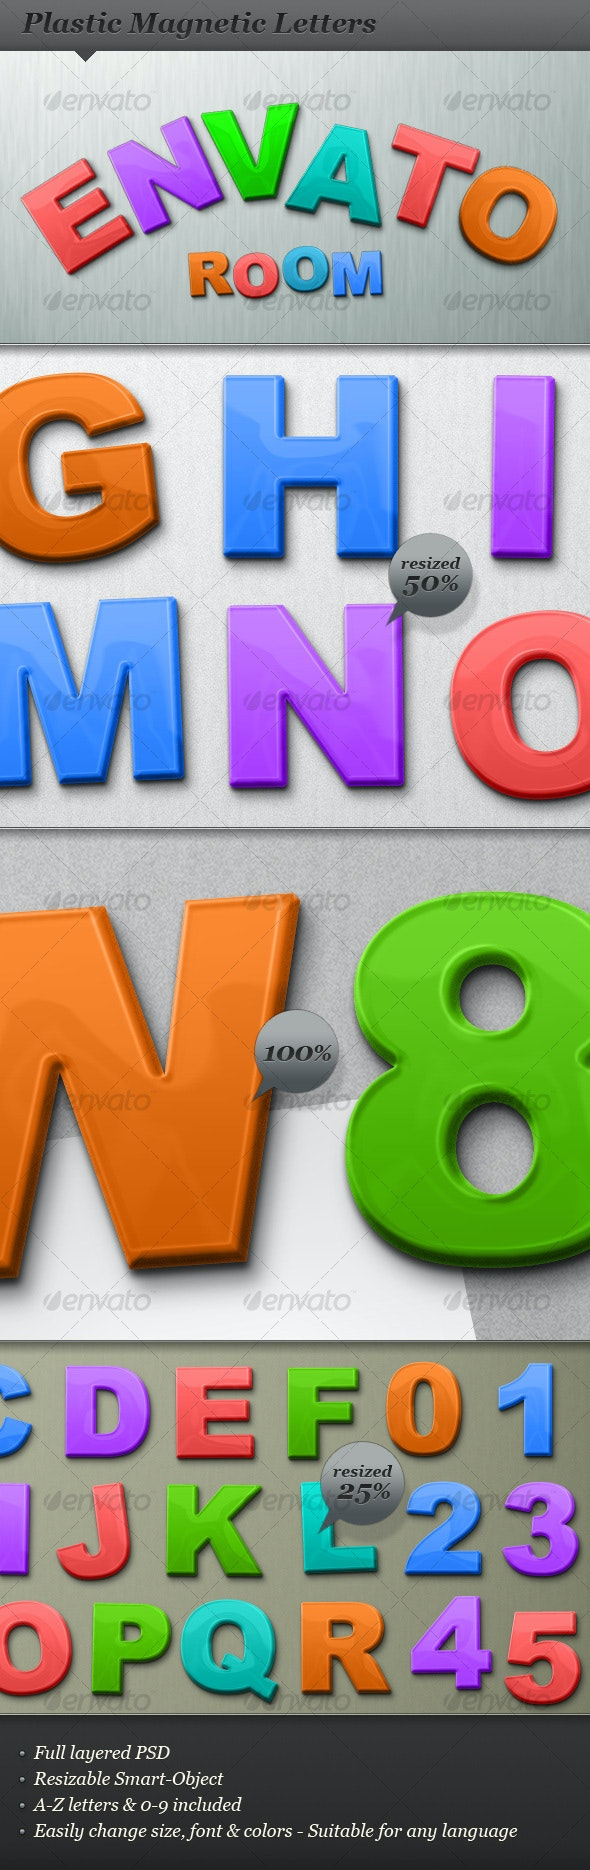 Plastic magnetic abc letters and numbers - Miscellaneous Graphics